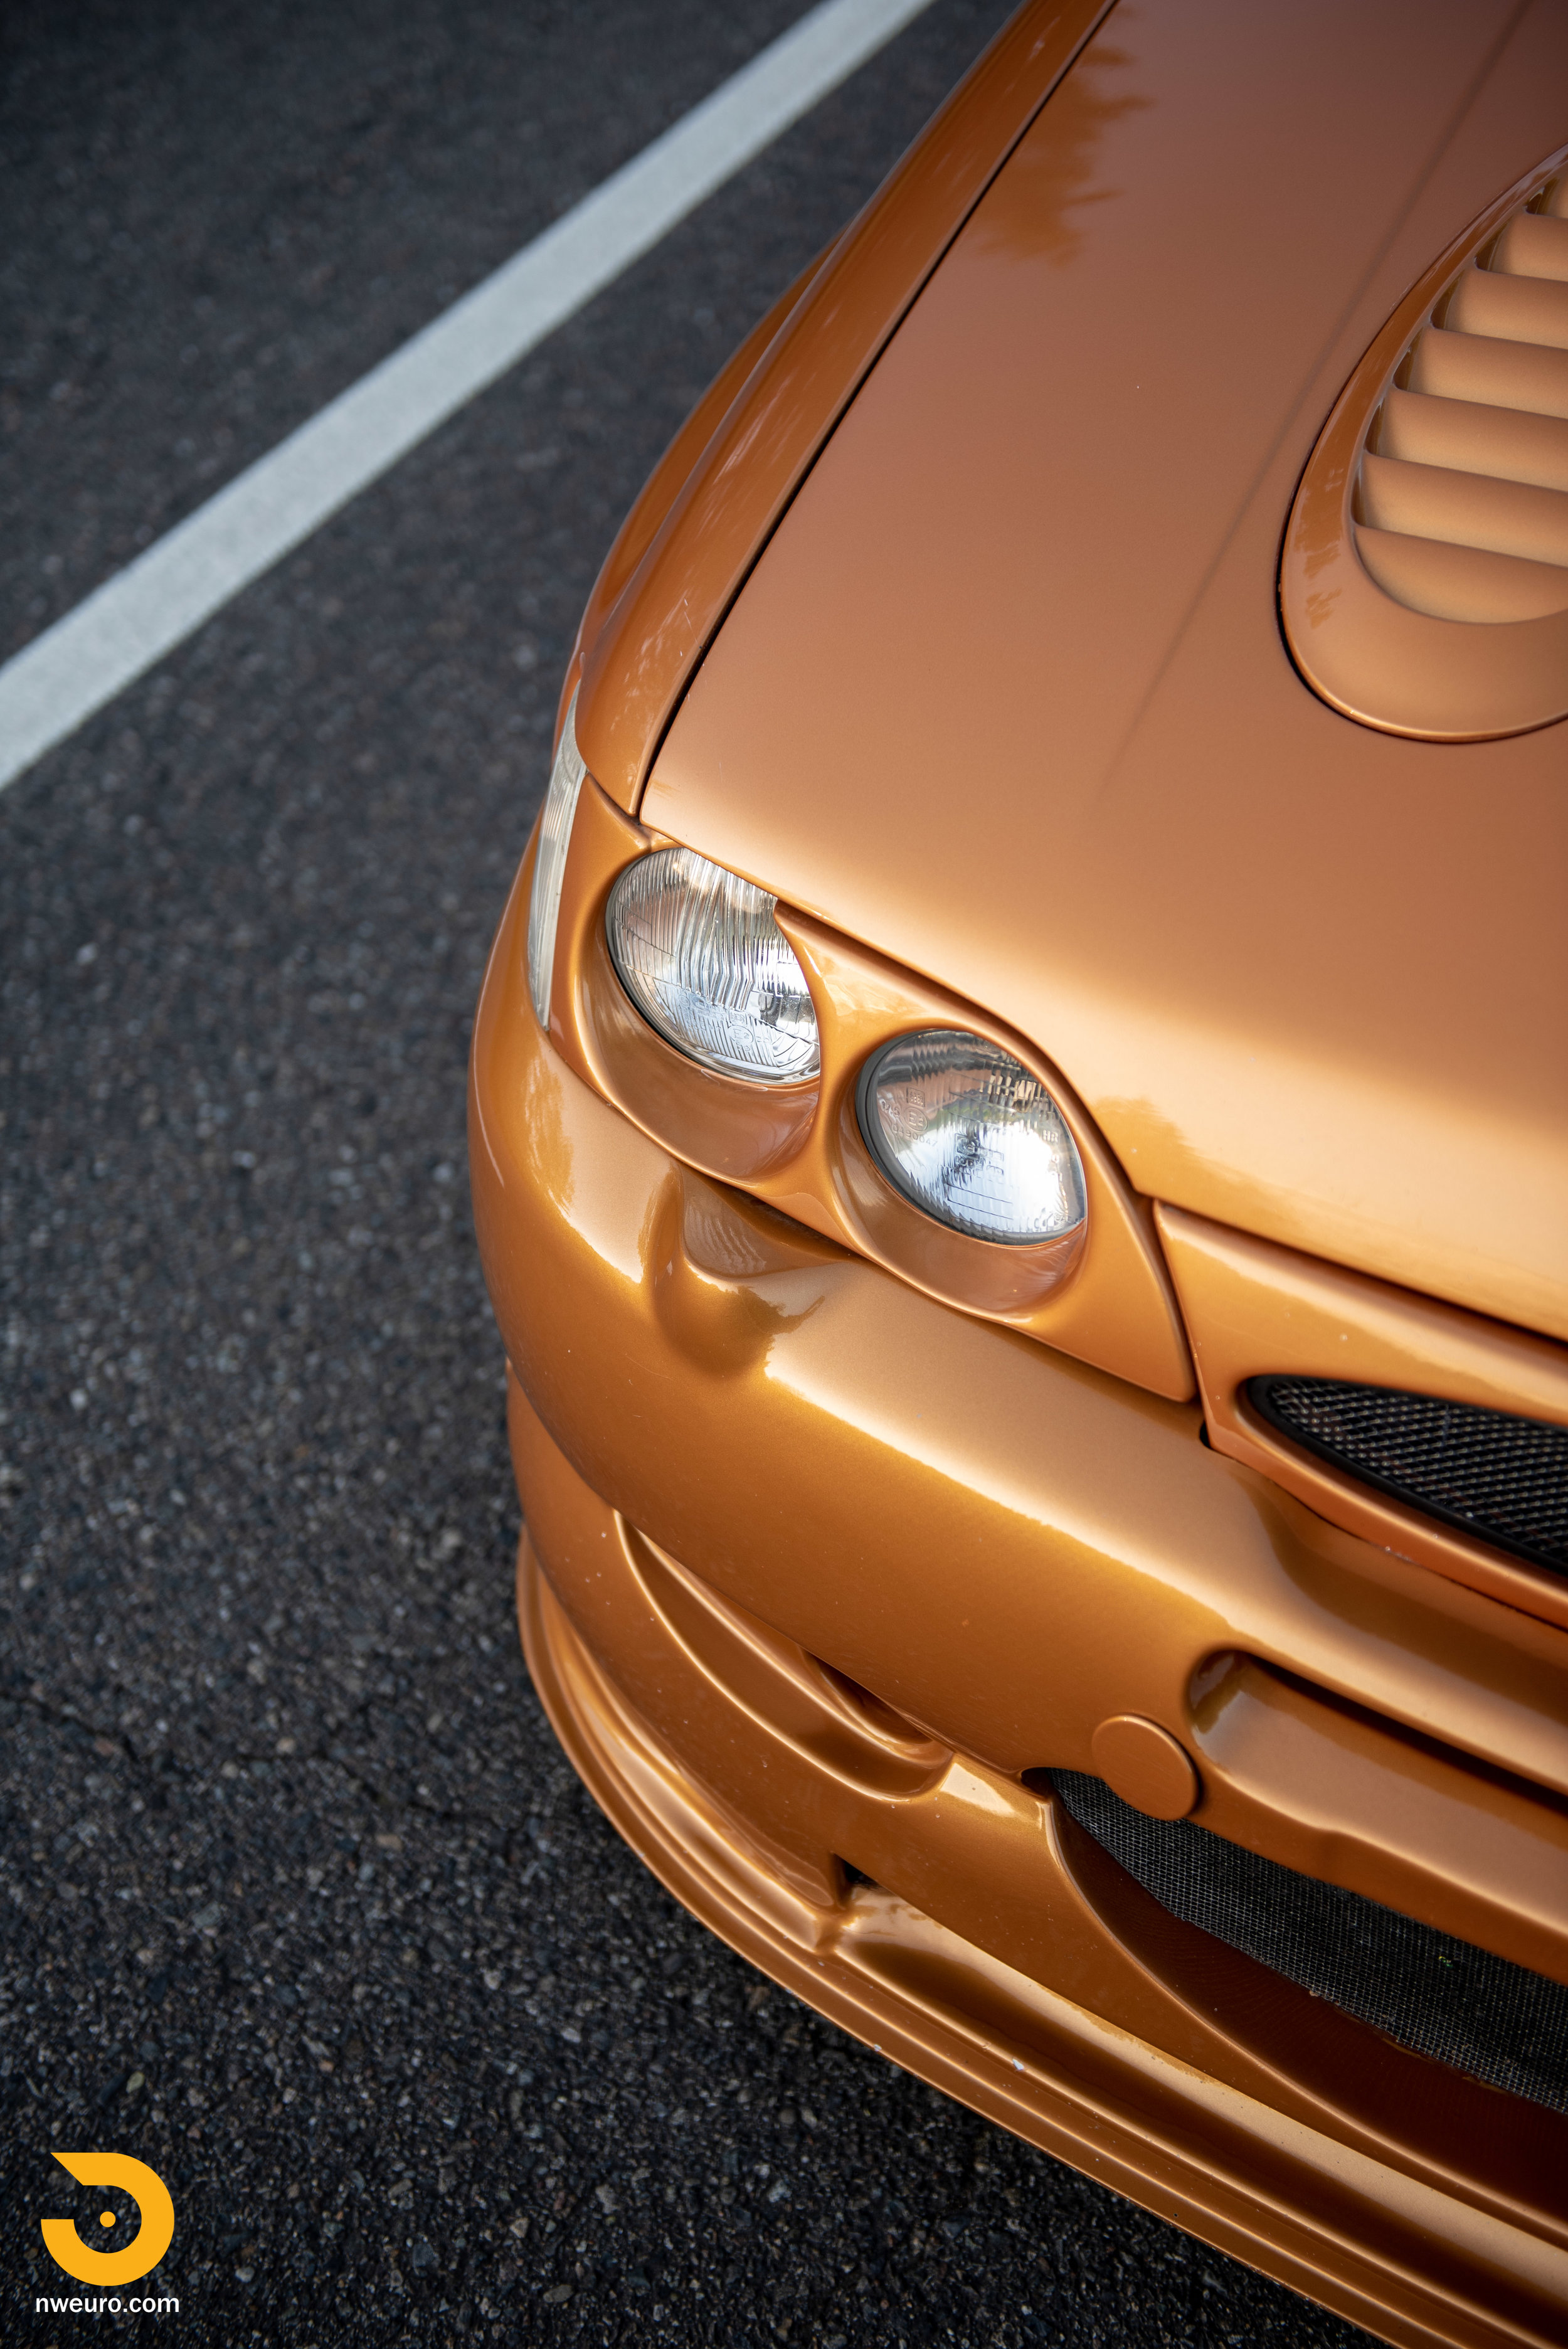 1995 Ford Escort Cosworth RS Gold-12.jpg